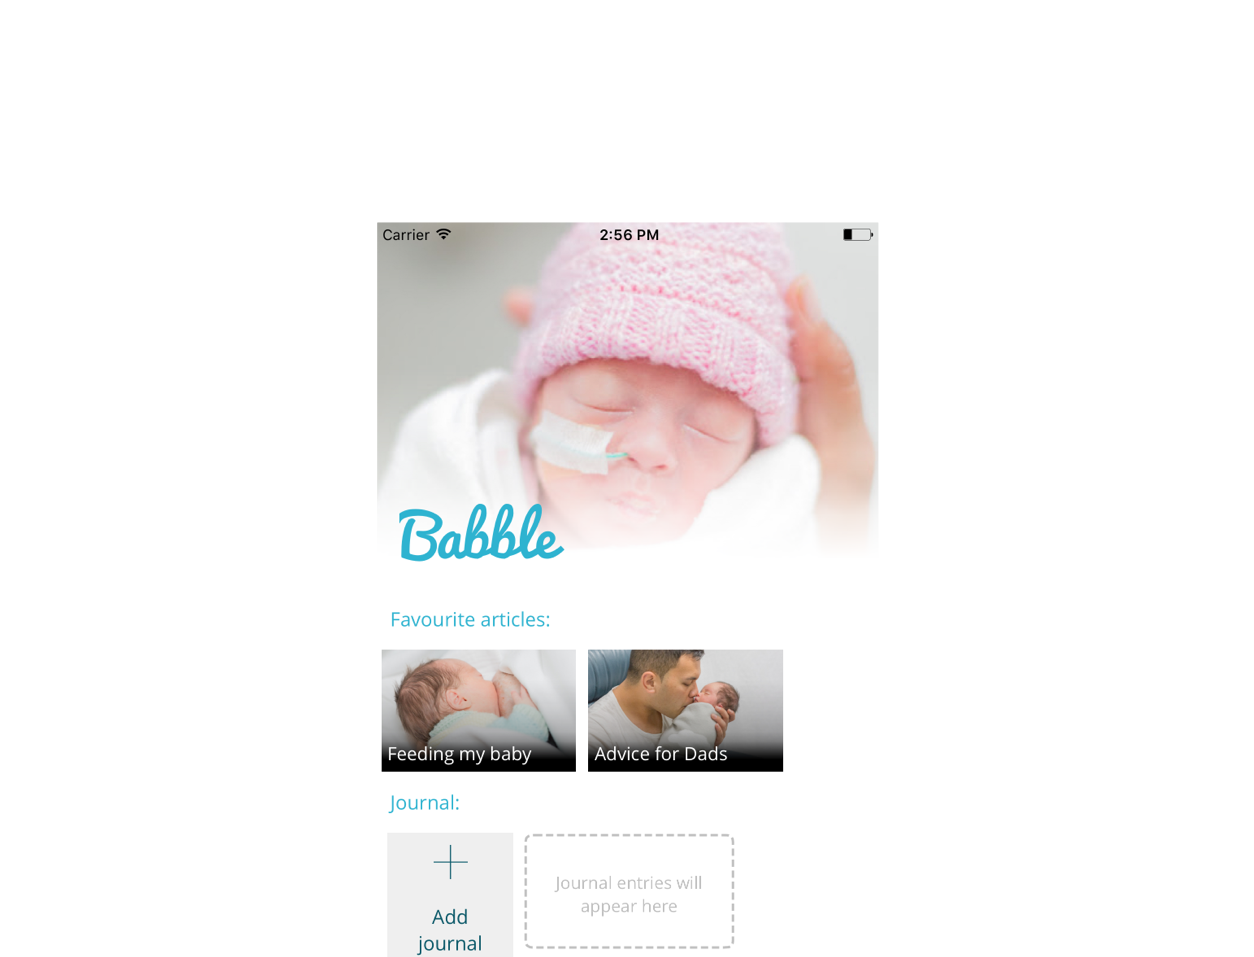 Nodero services - Babble apps